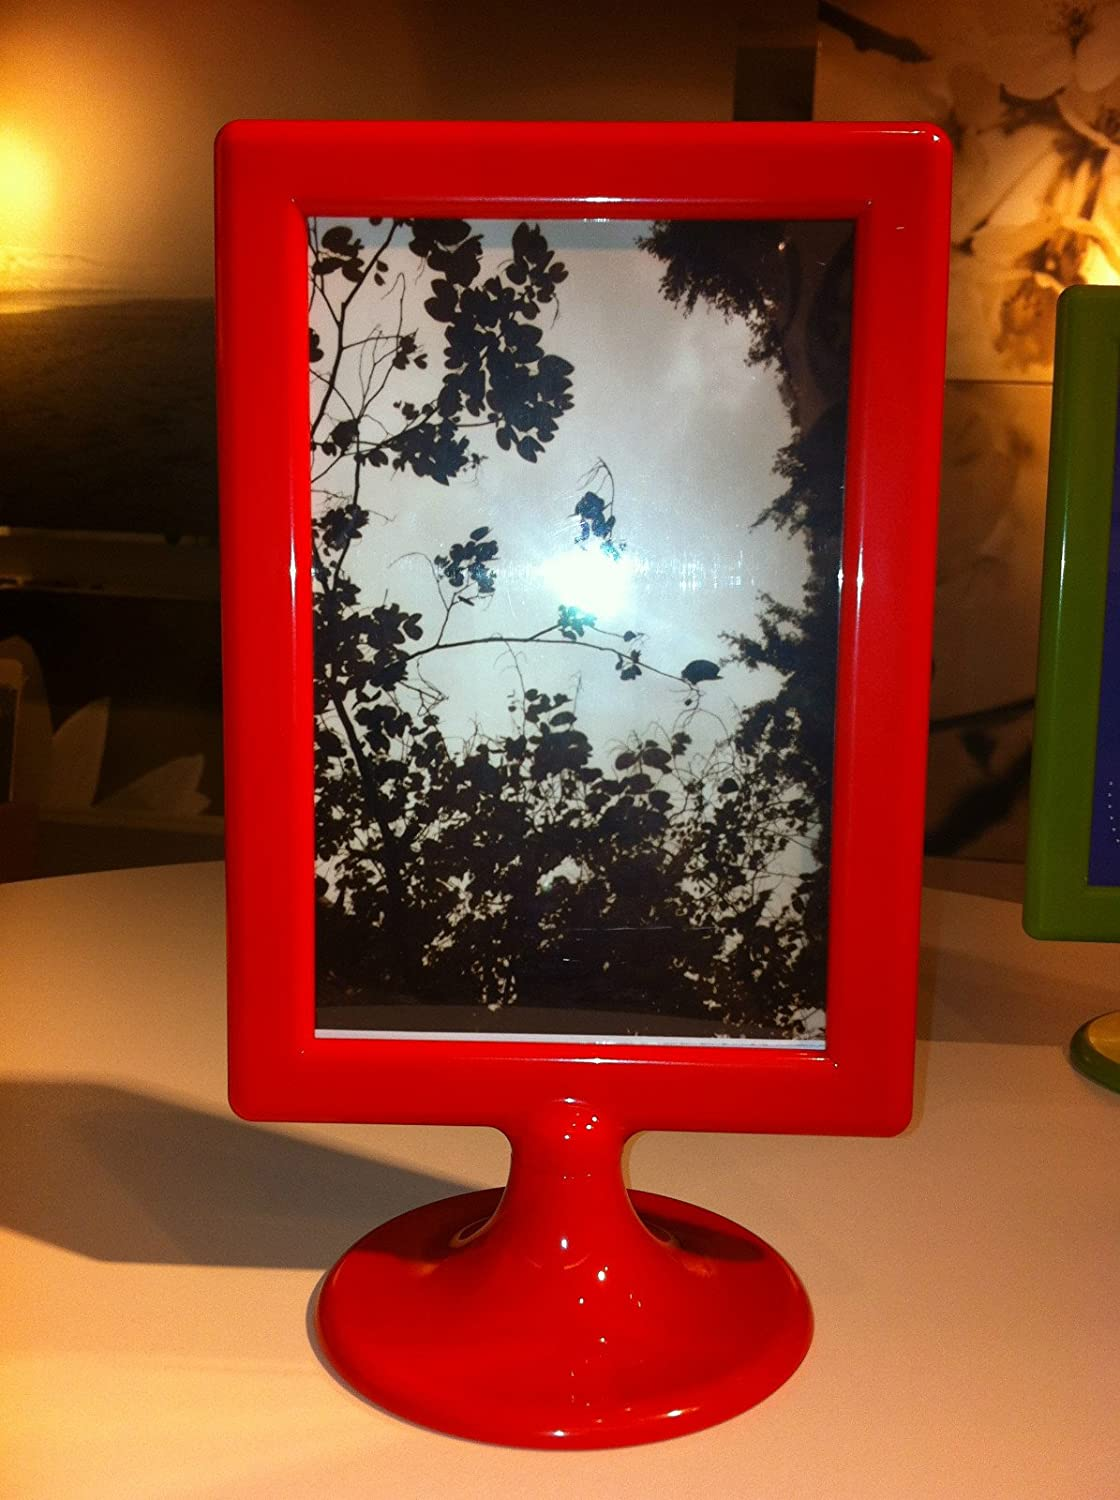 Amazon.com - IKEA TOLSBY FRAME FOR 2 PICTURE RED COLORWEDDING, PARTY ...